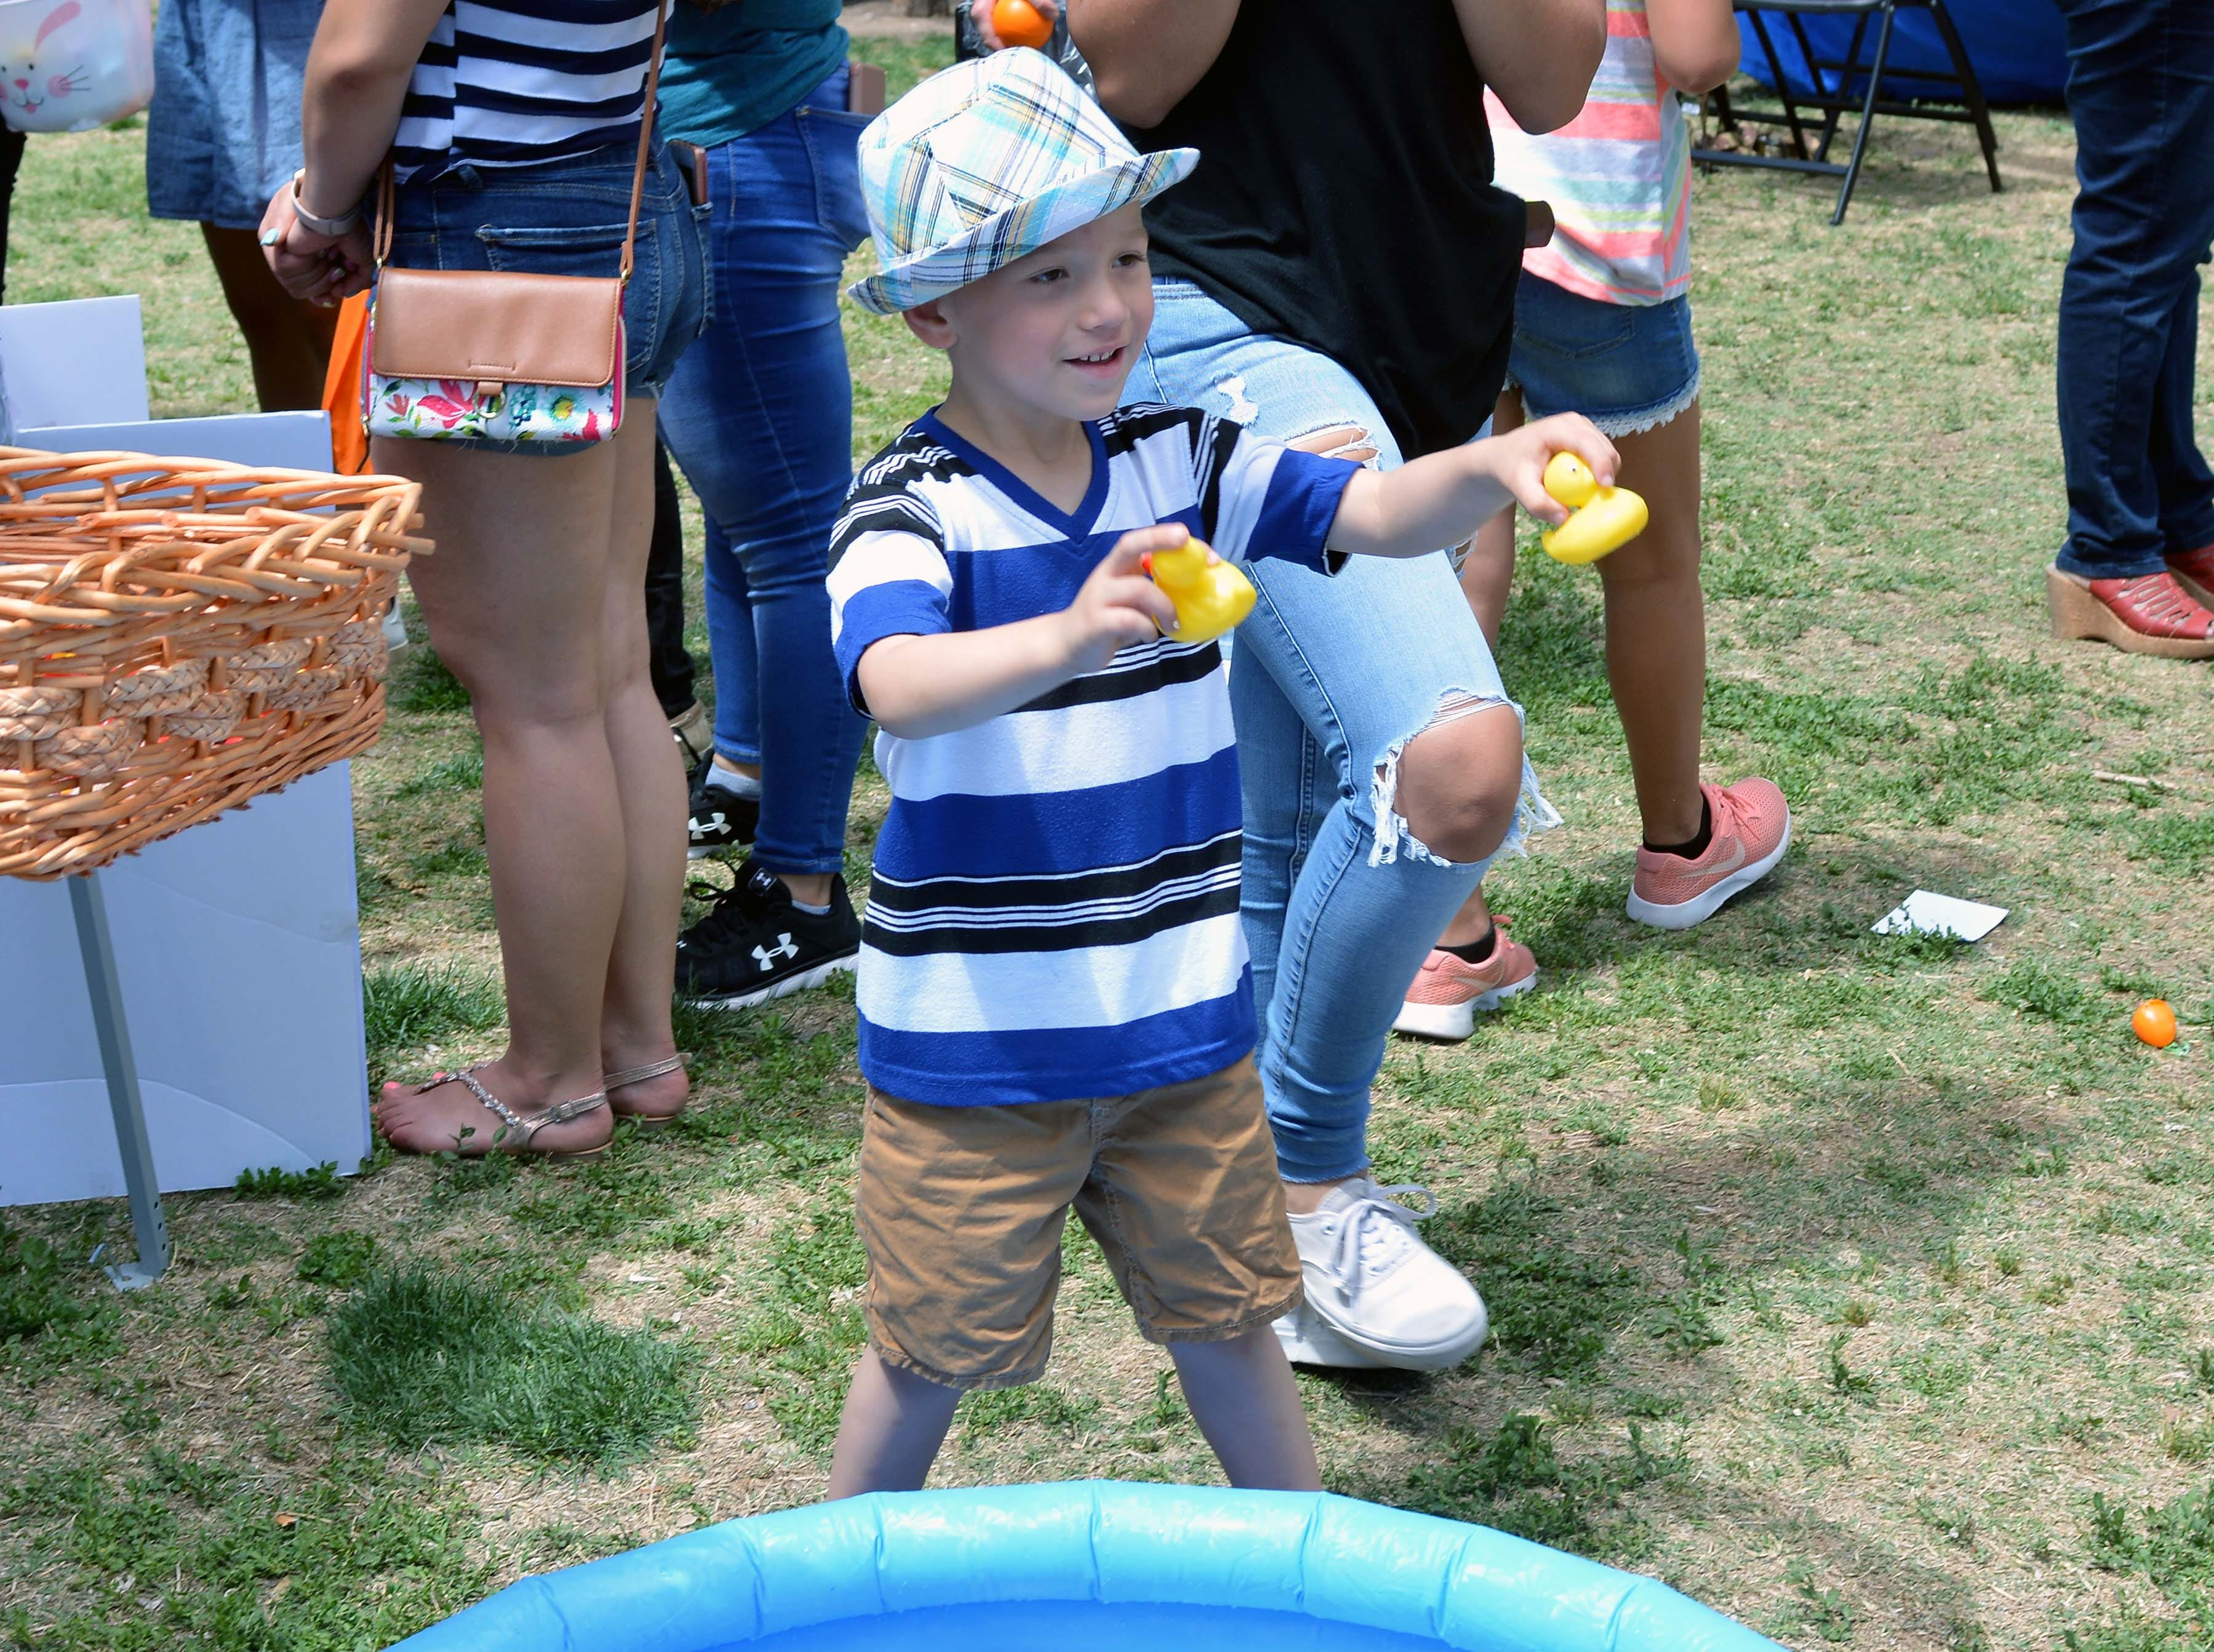 Caleb Valdiviezo, 4, finds a pair of matching ducks and wins a prize during SpringFest at Young Park on Saturday, April 20, 2019.